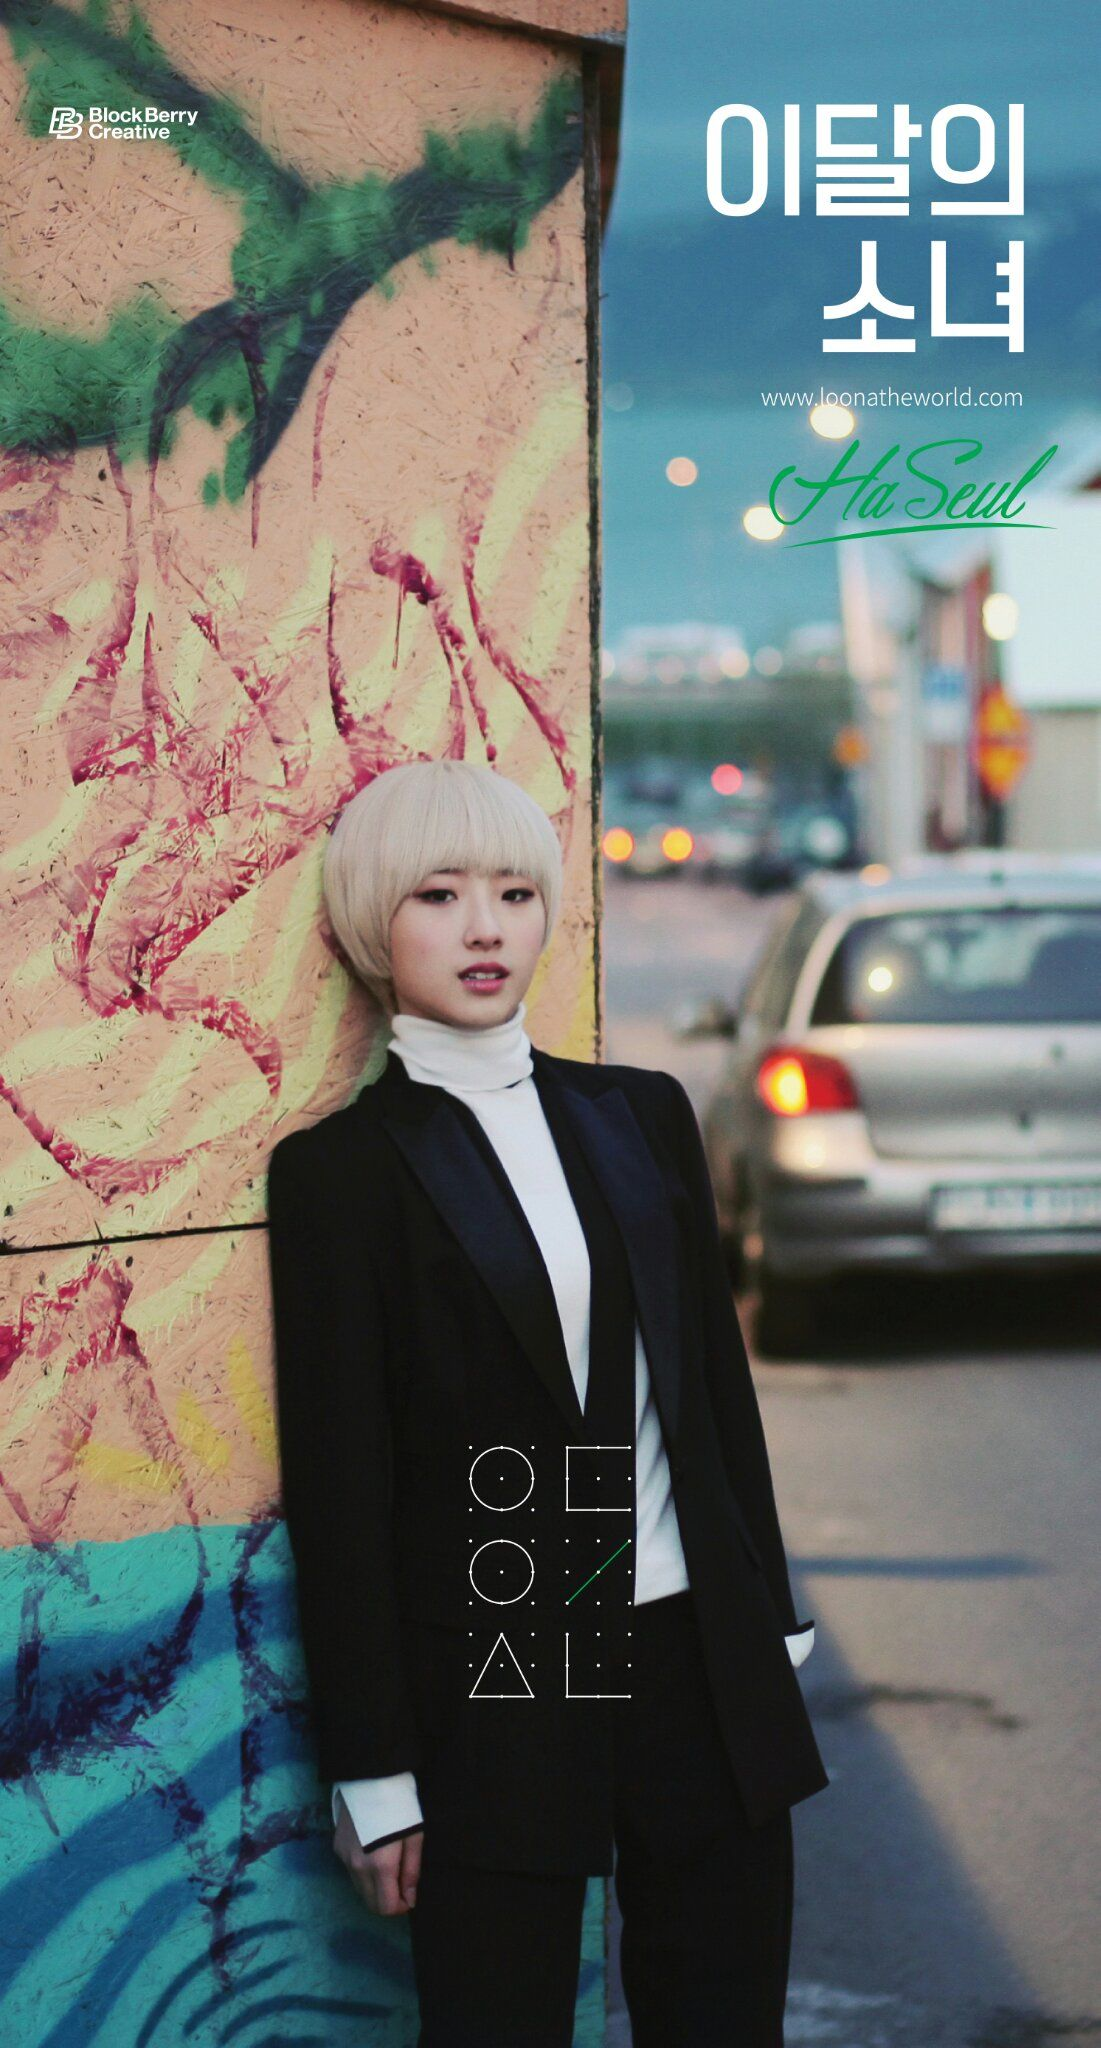 HaSeul debut photo 4.PNG